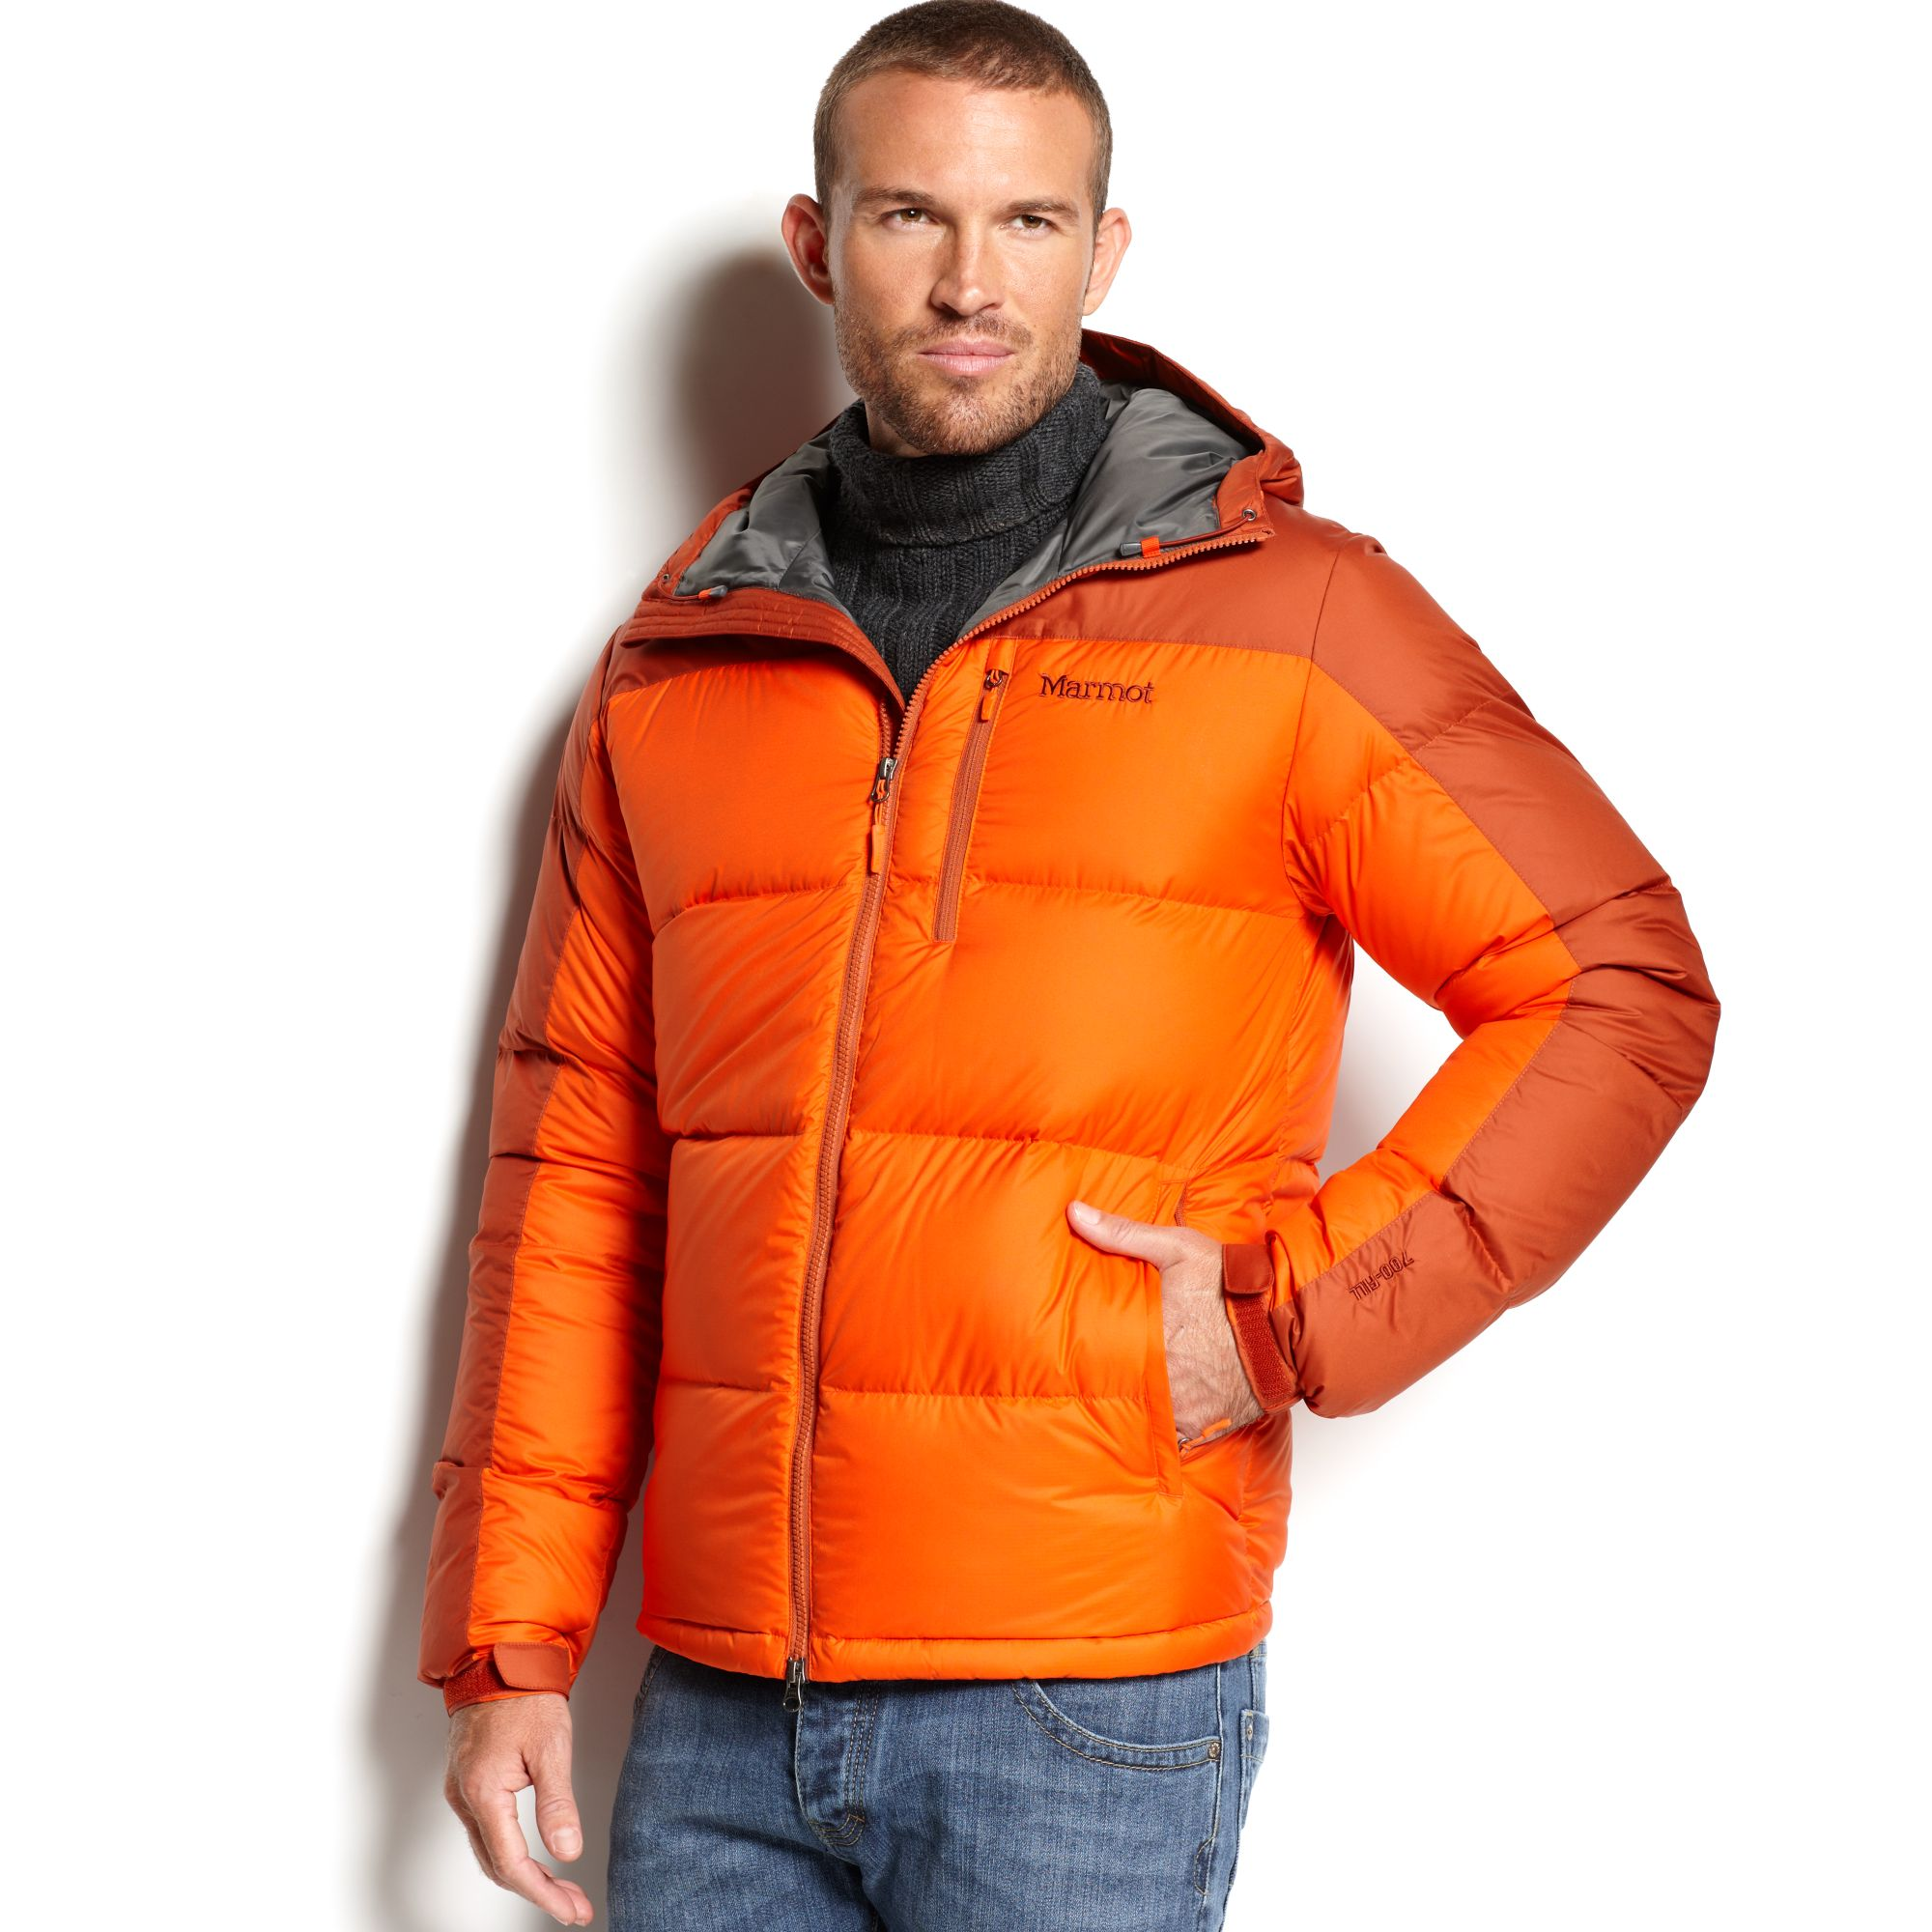 Lyst - Marmot Guides Hooded Waterproof Down Jacket in Orange for Men 905081e50984